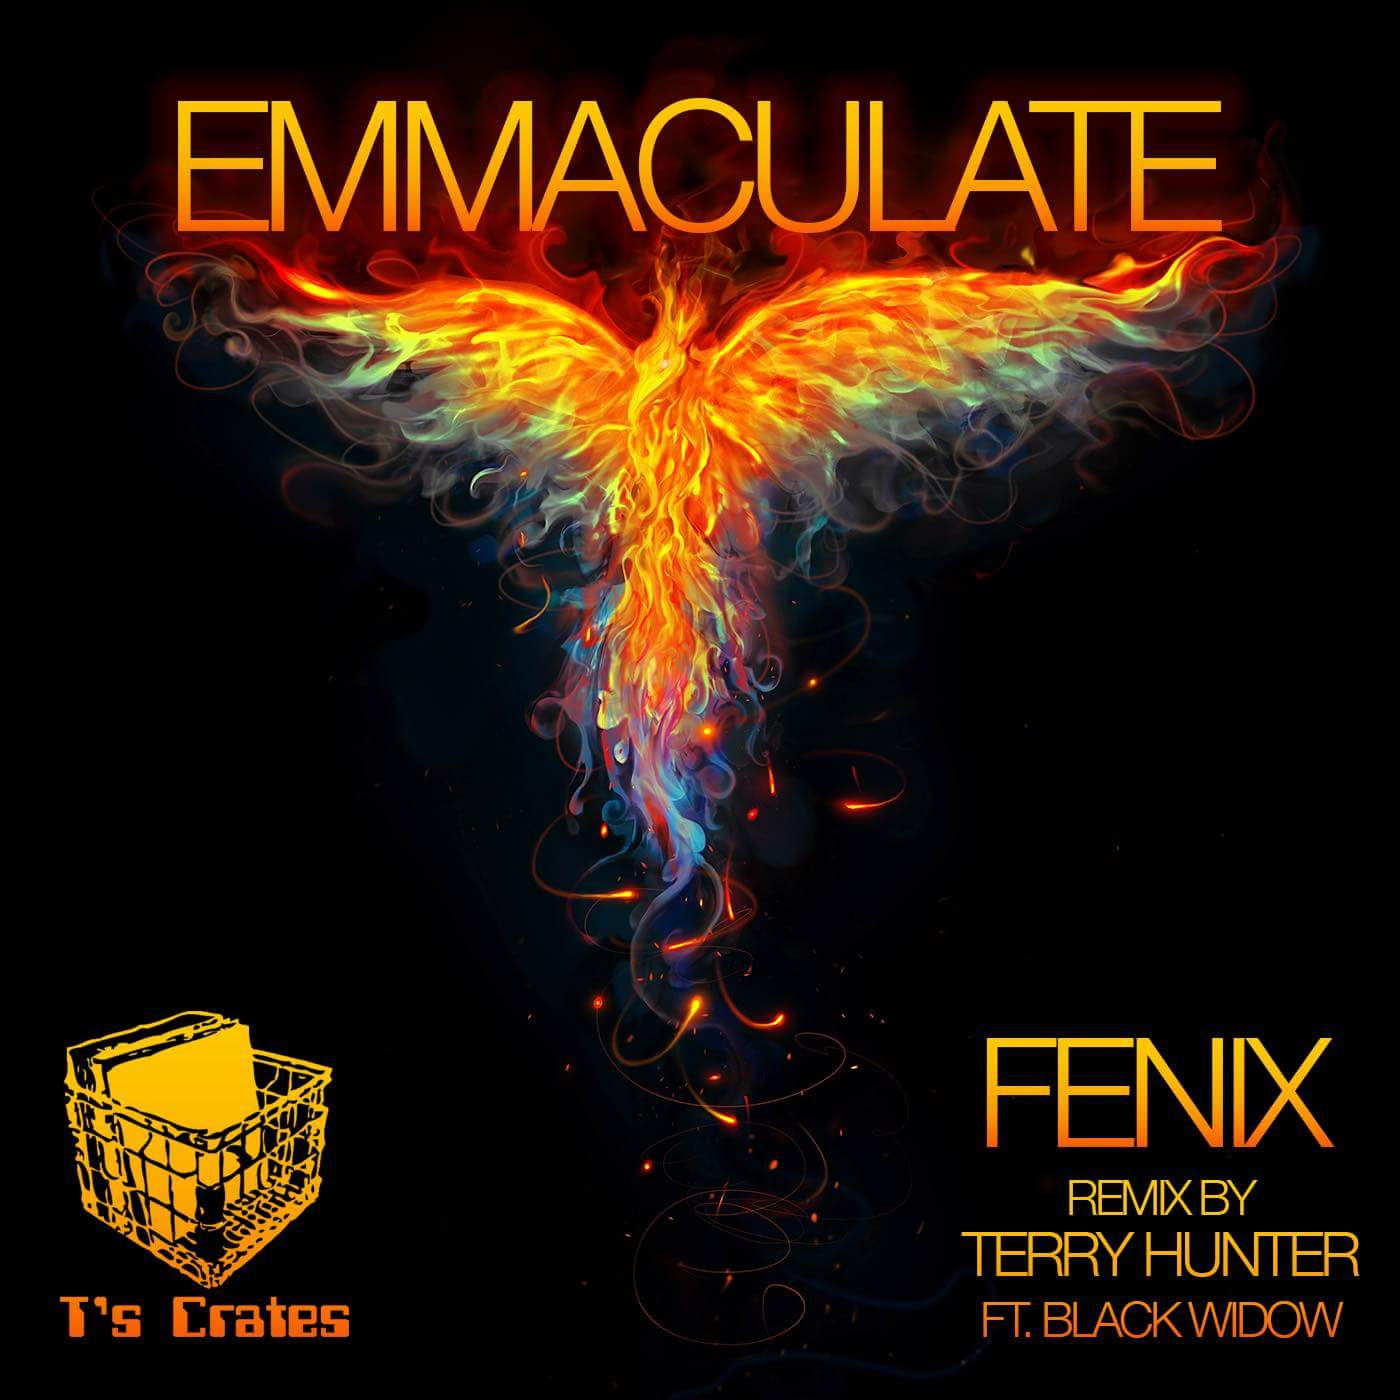 AVAILABLE NOW! - Emmaculate with Remix by Terry Hunter Ft. Black WidowAvailable on Traxsource!!!